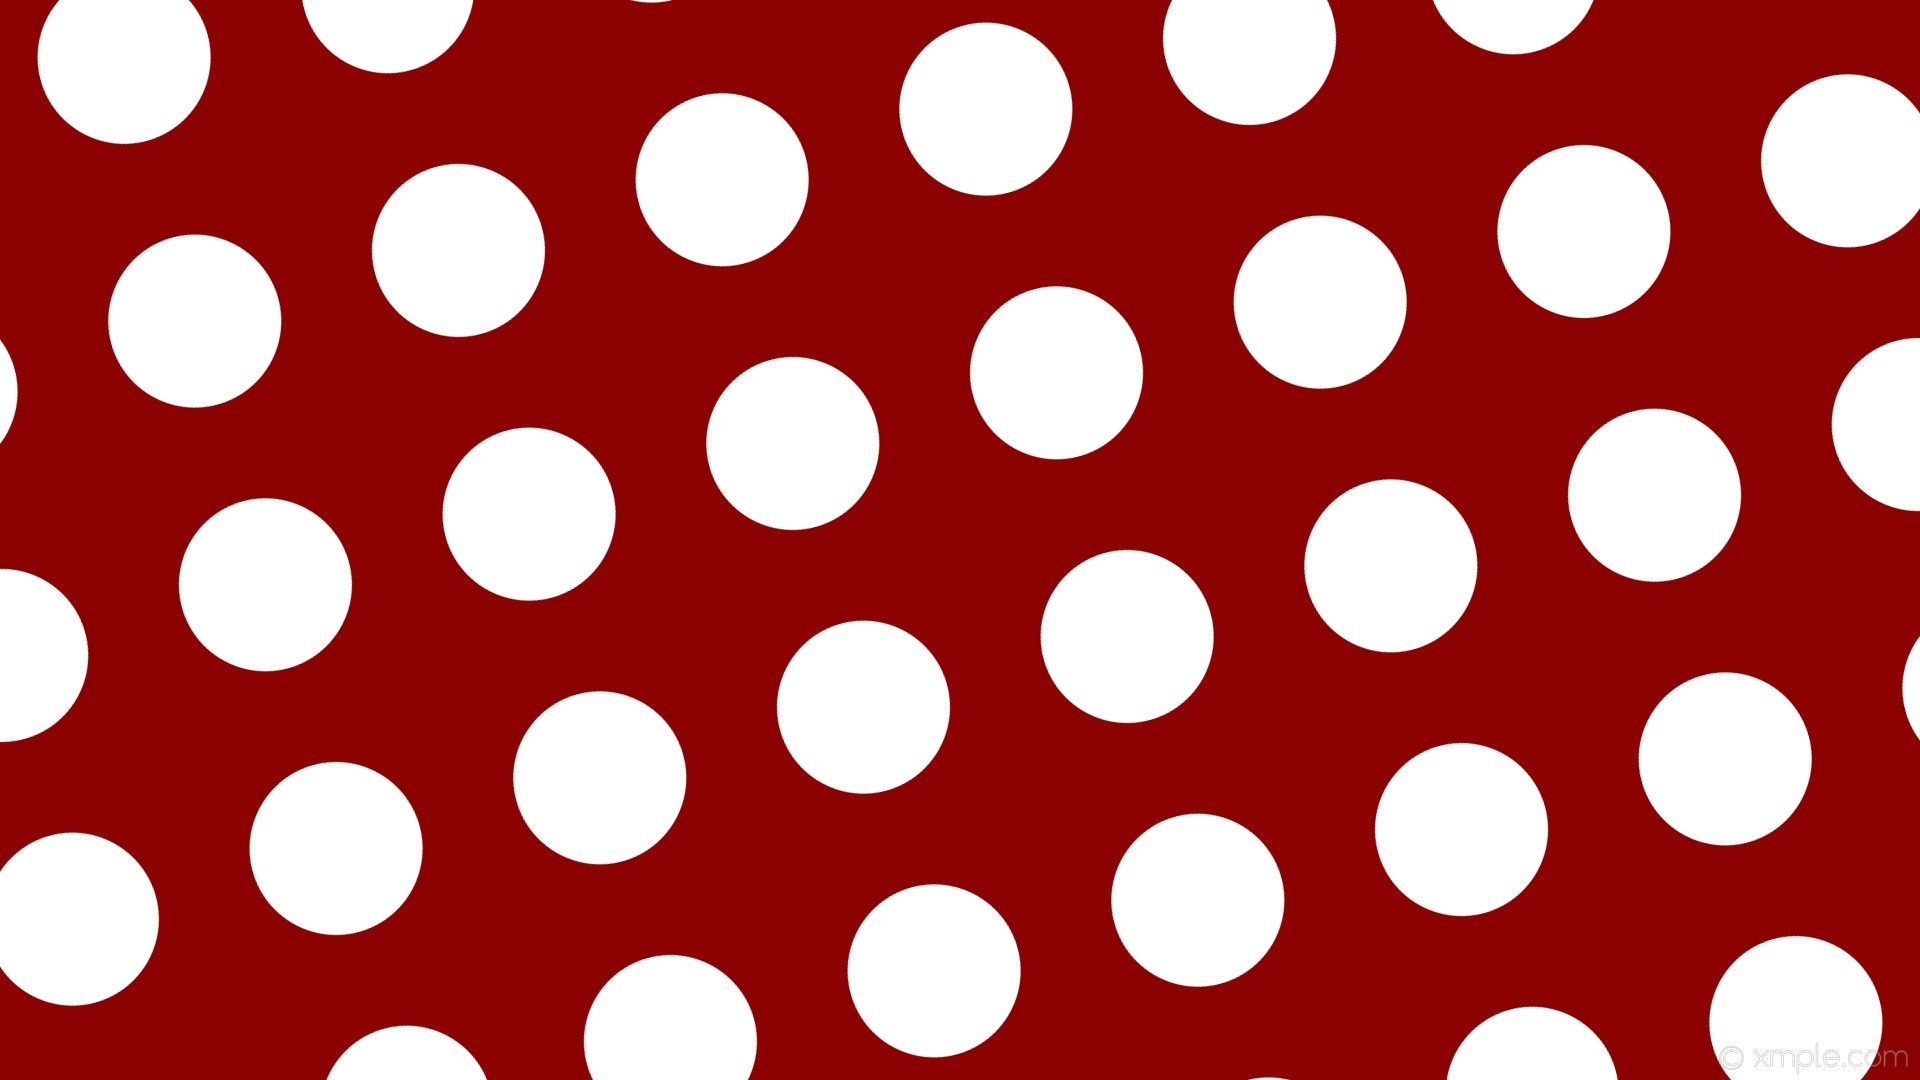 Polka Dot computer wallpaper